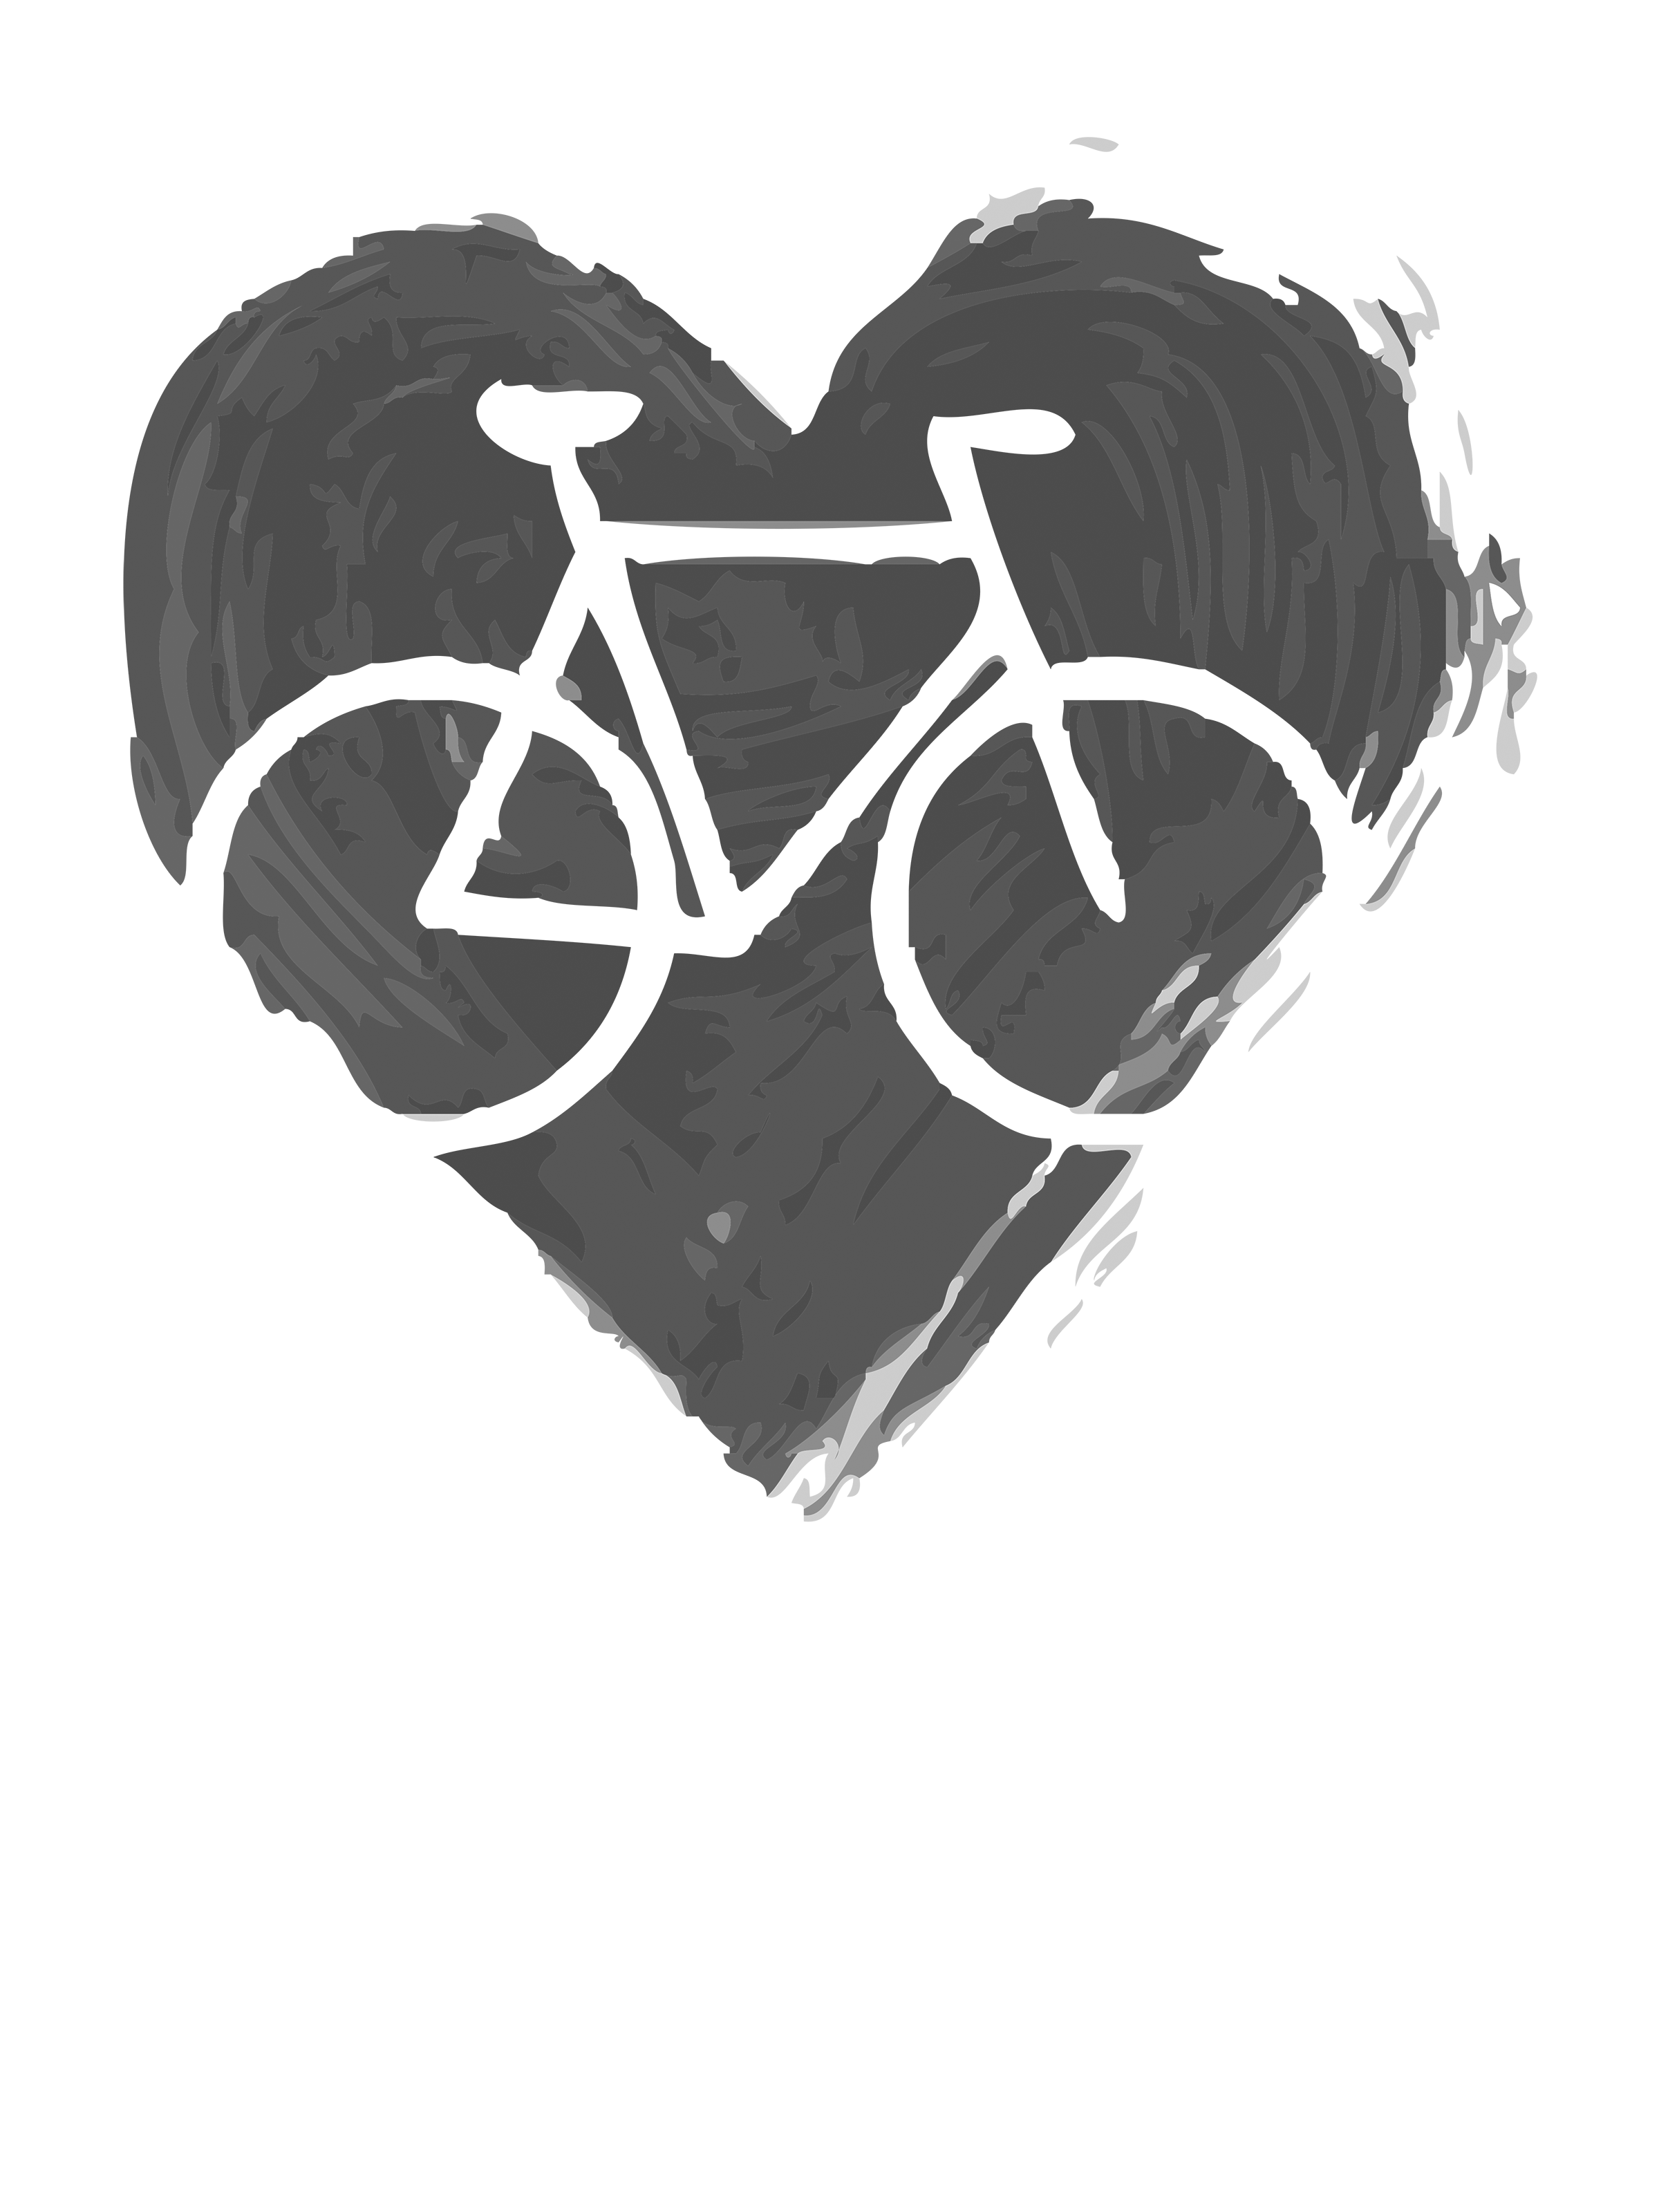 0162 – Bicycle in the Heart